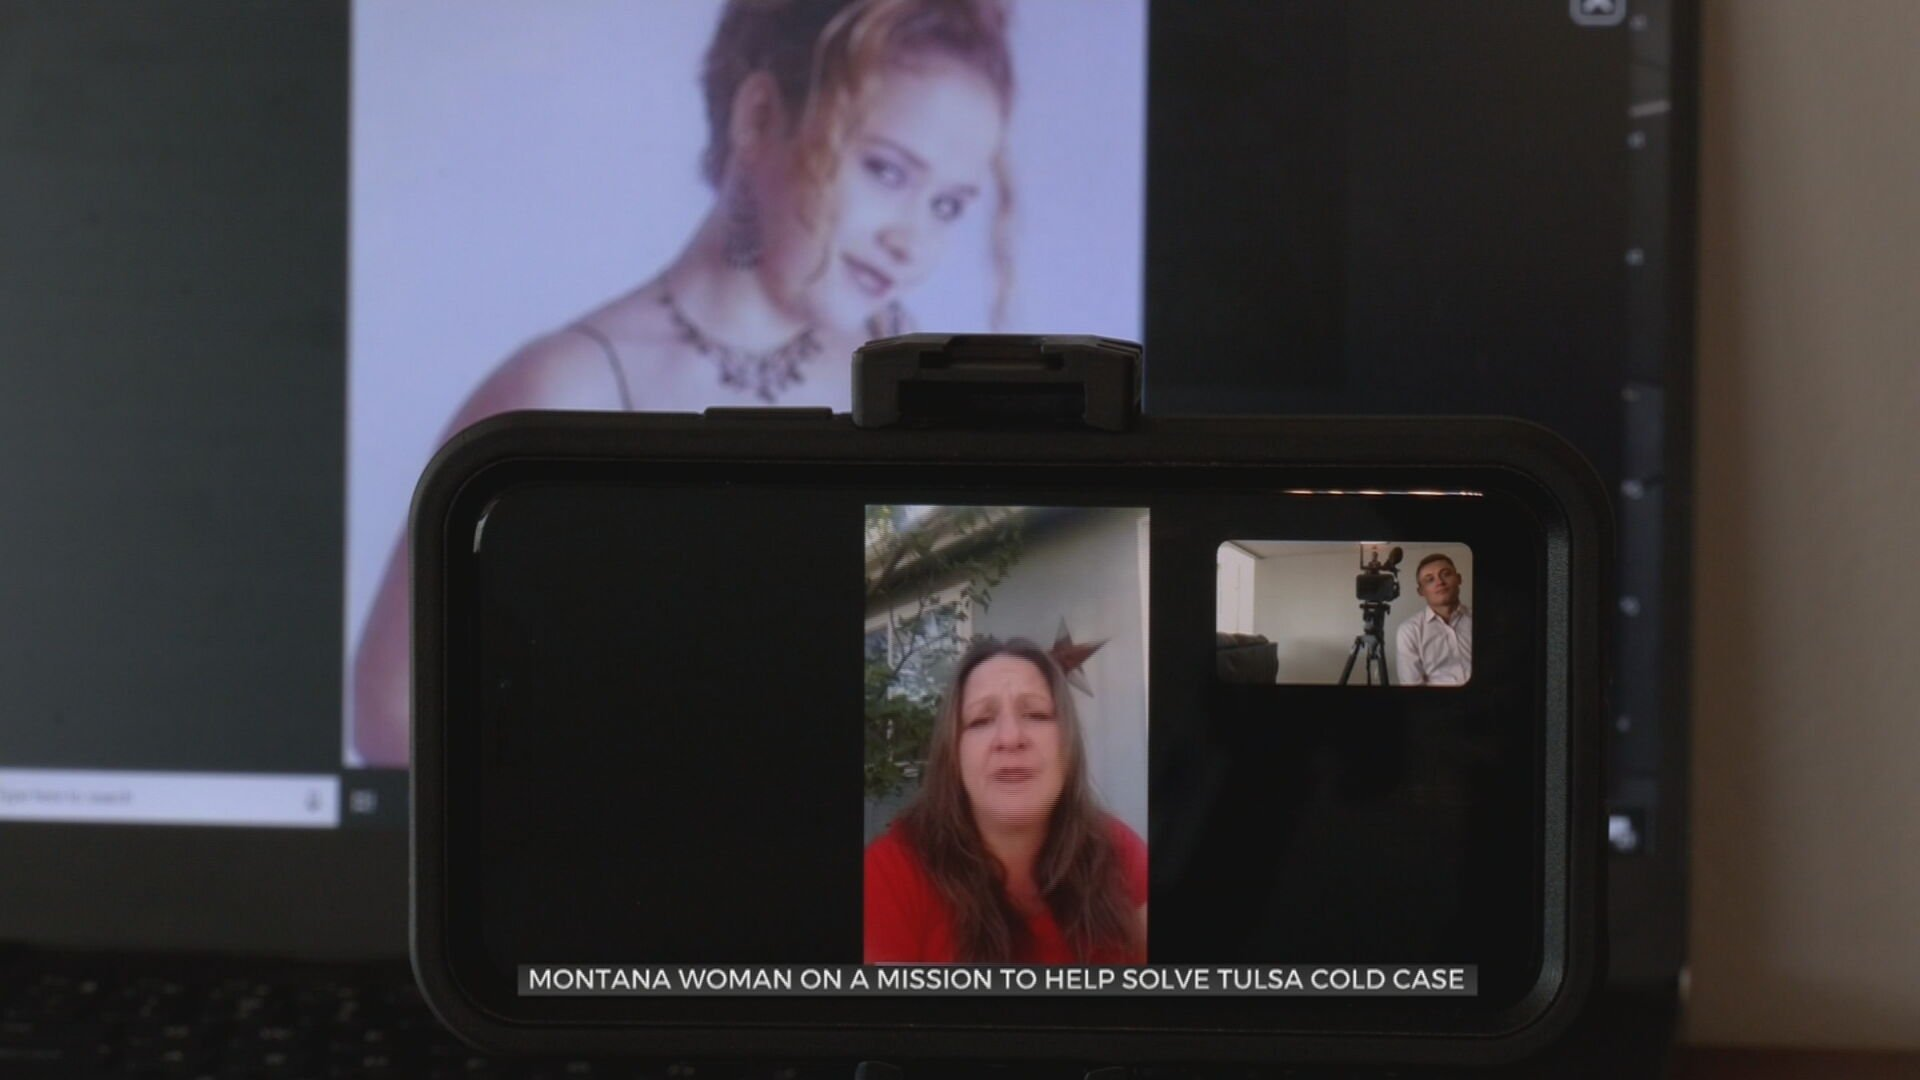 Montana Mother, Daughter On Mission To Help Solve Tulsa Cold Case